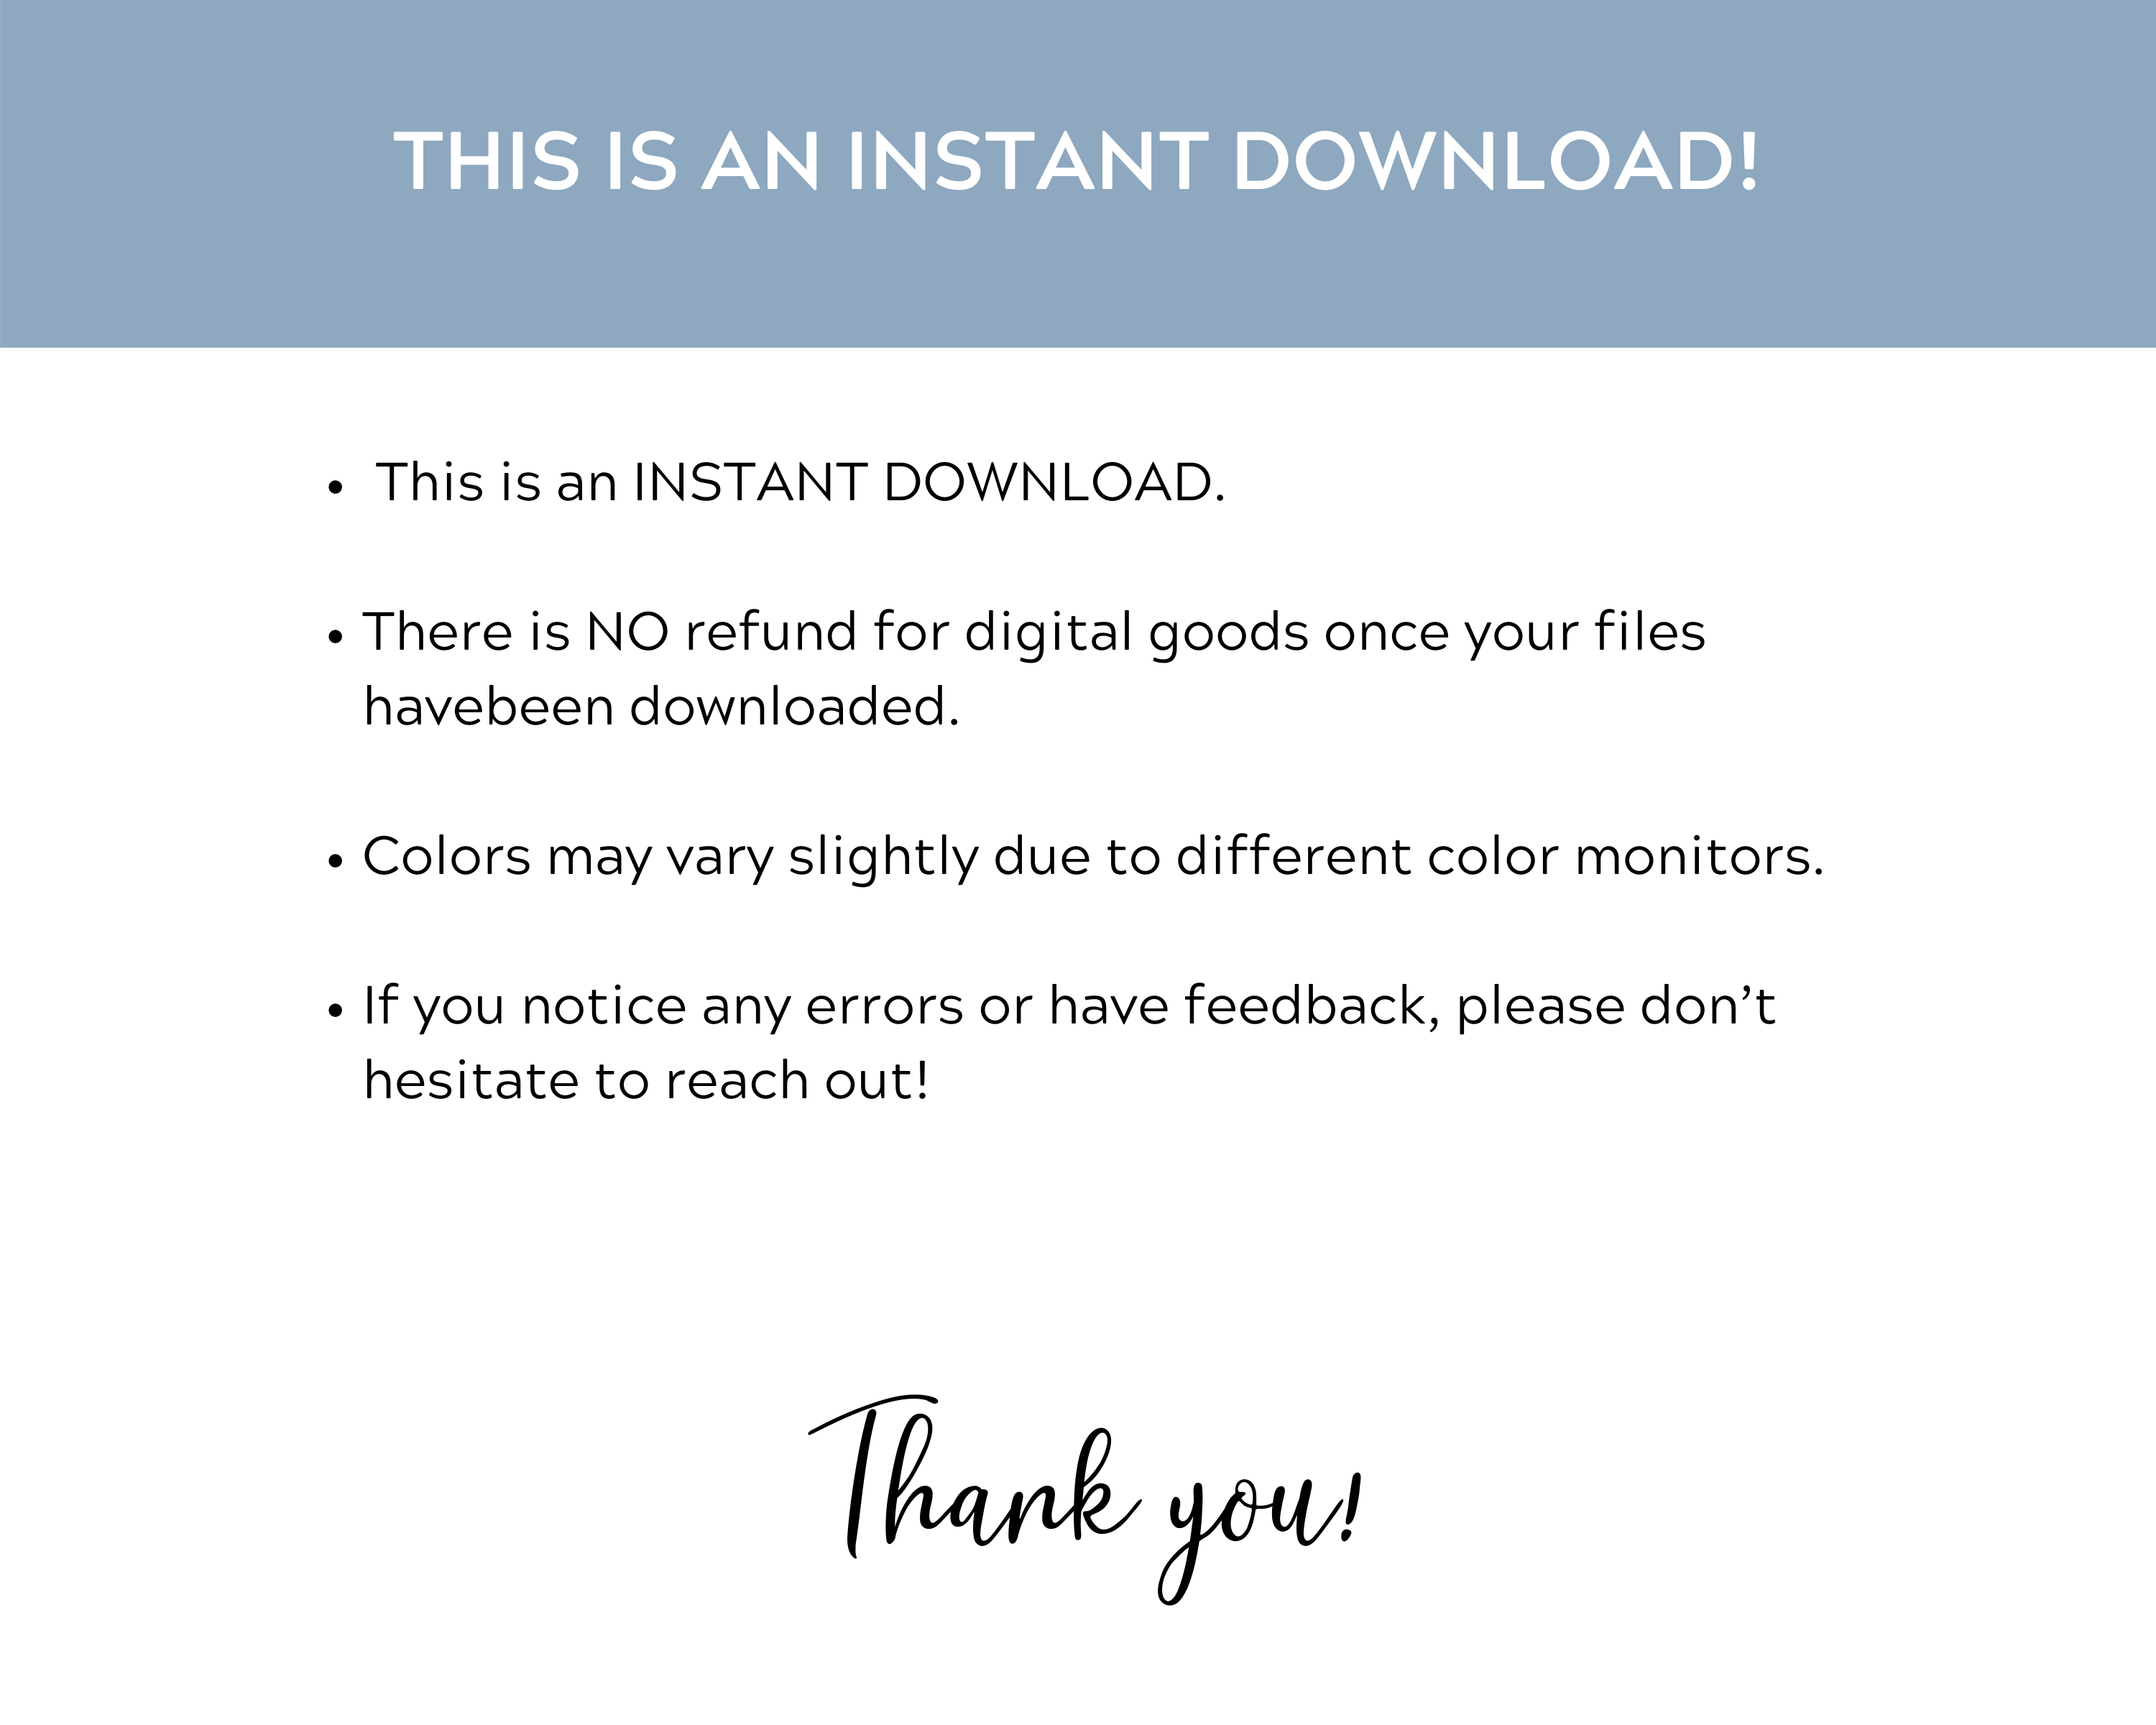 instant download info